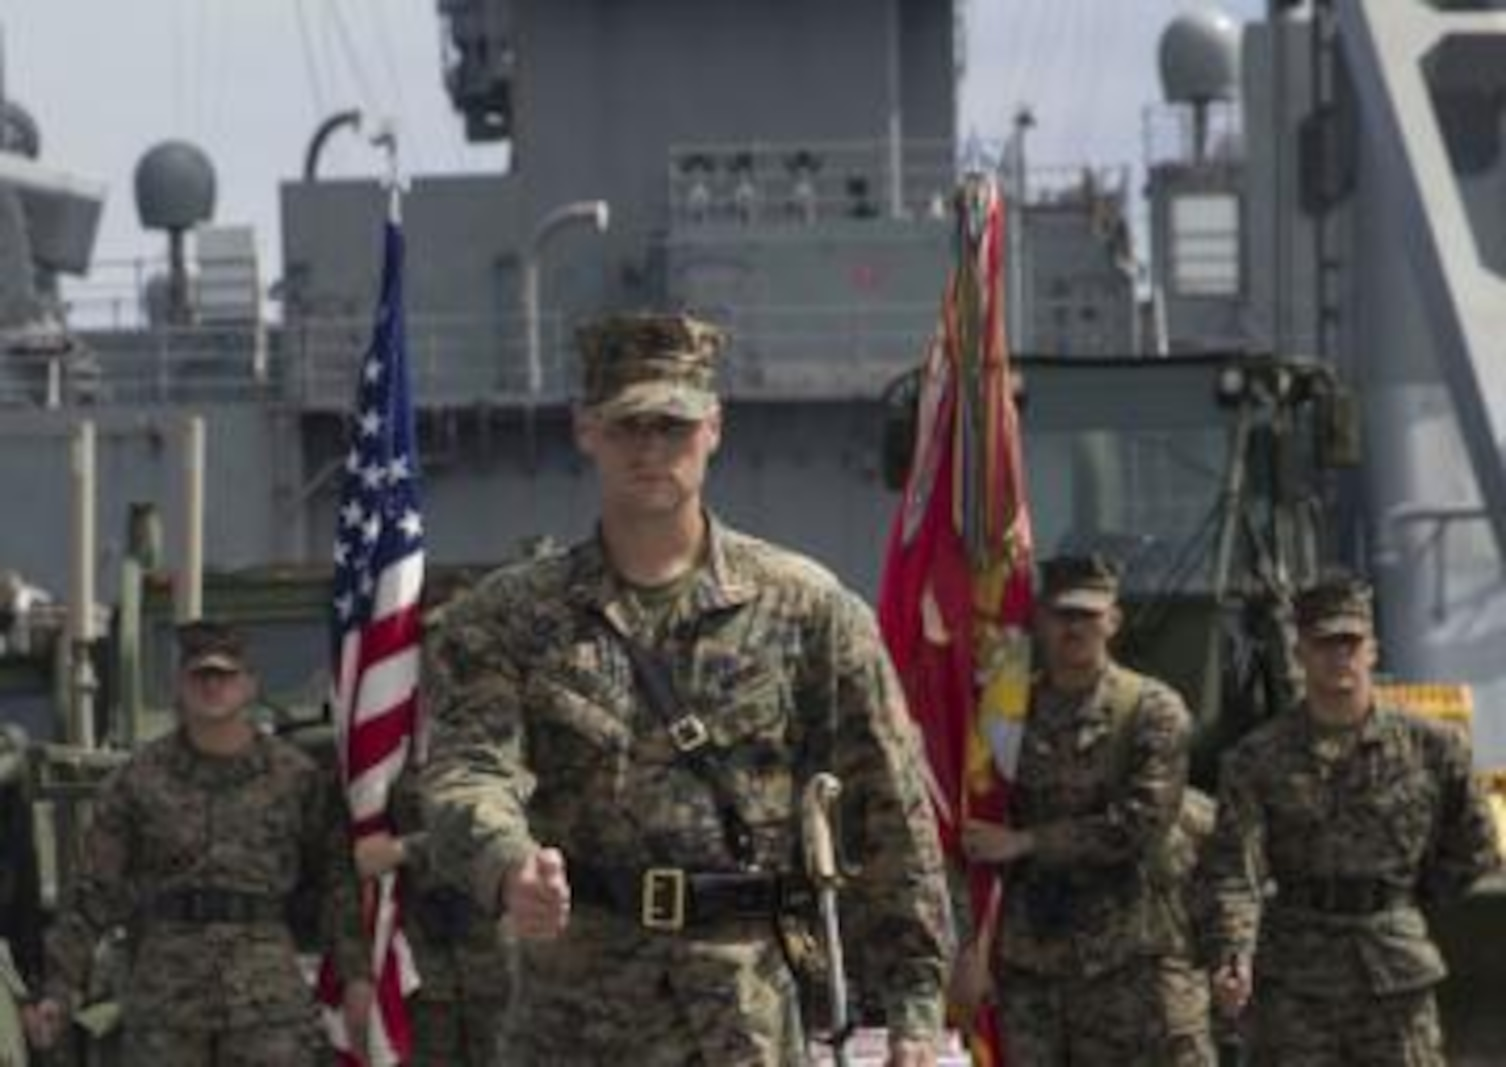 1st Lt. Michael Vazquez, with Combat Logistics Battalion 11, marches to the center of the flight deck of the USS Harpers Ferry.